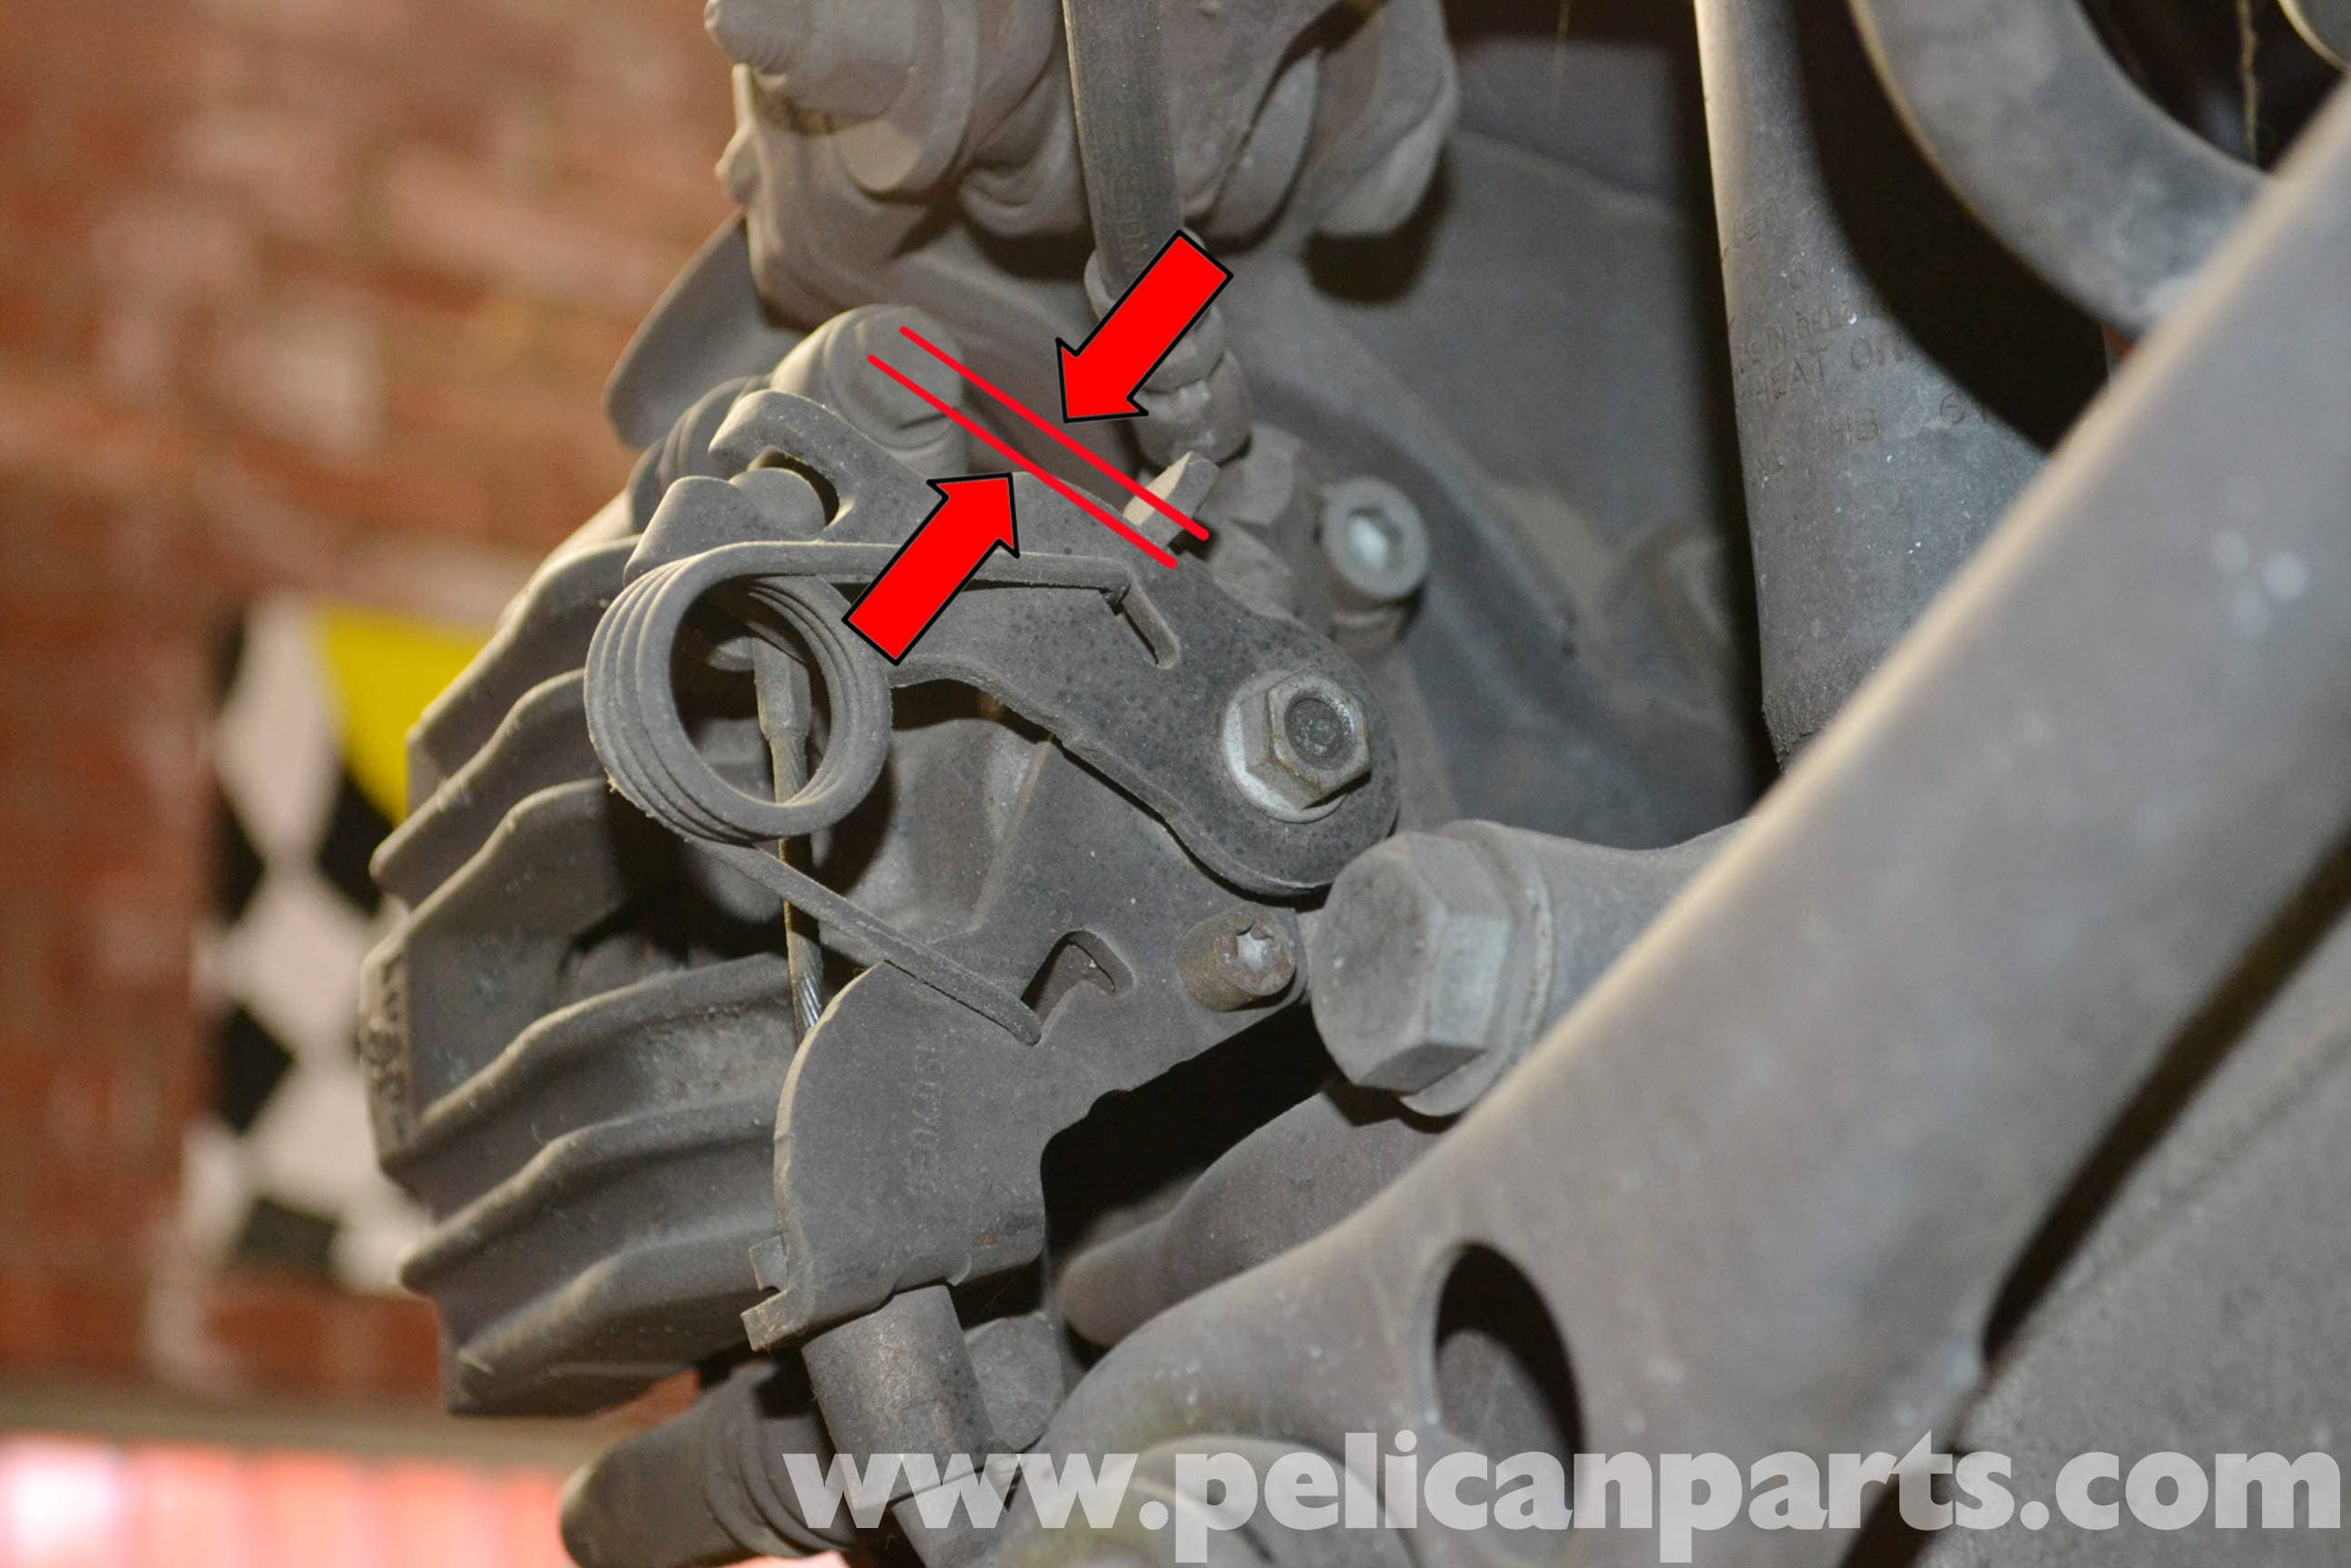 Large Image | Extra-Large Image · Cable Replacement - The parking brake ...